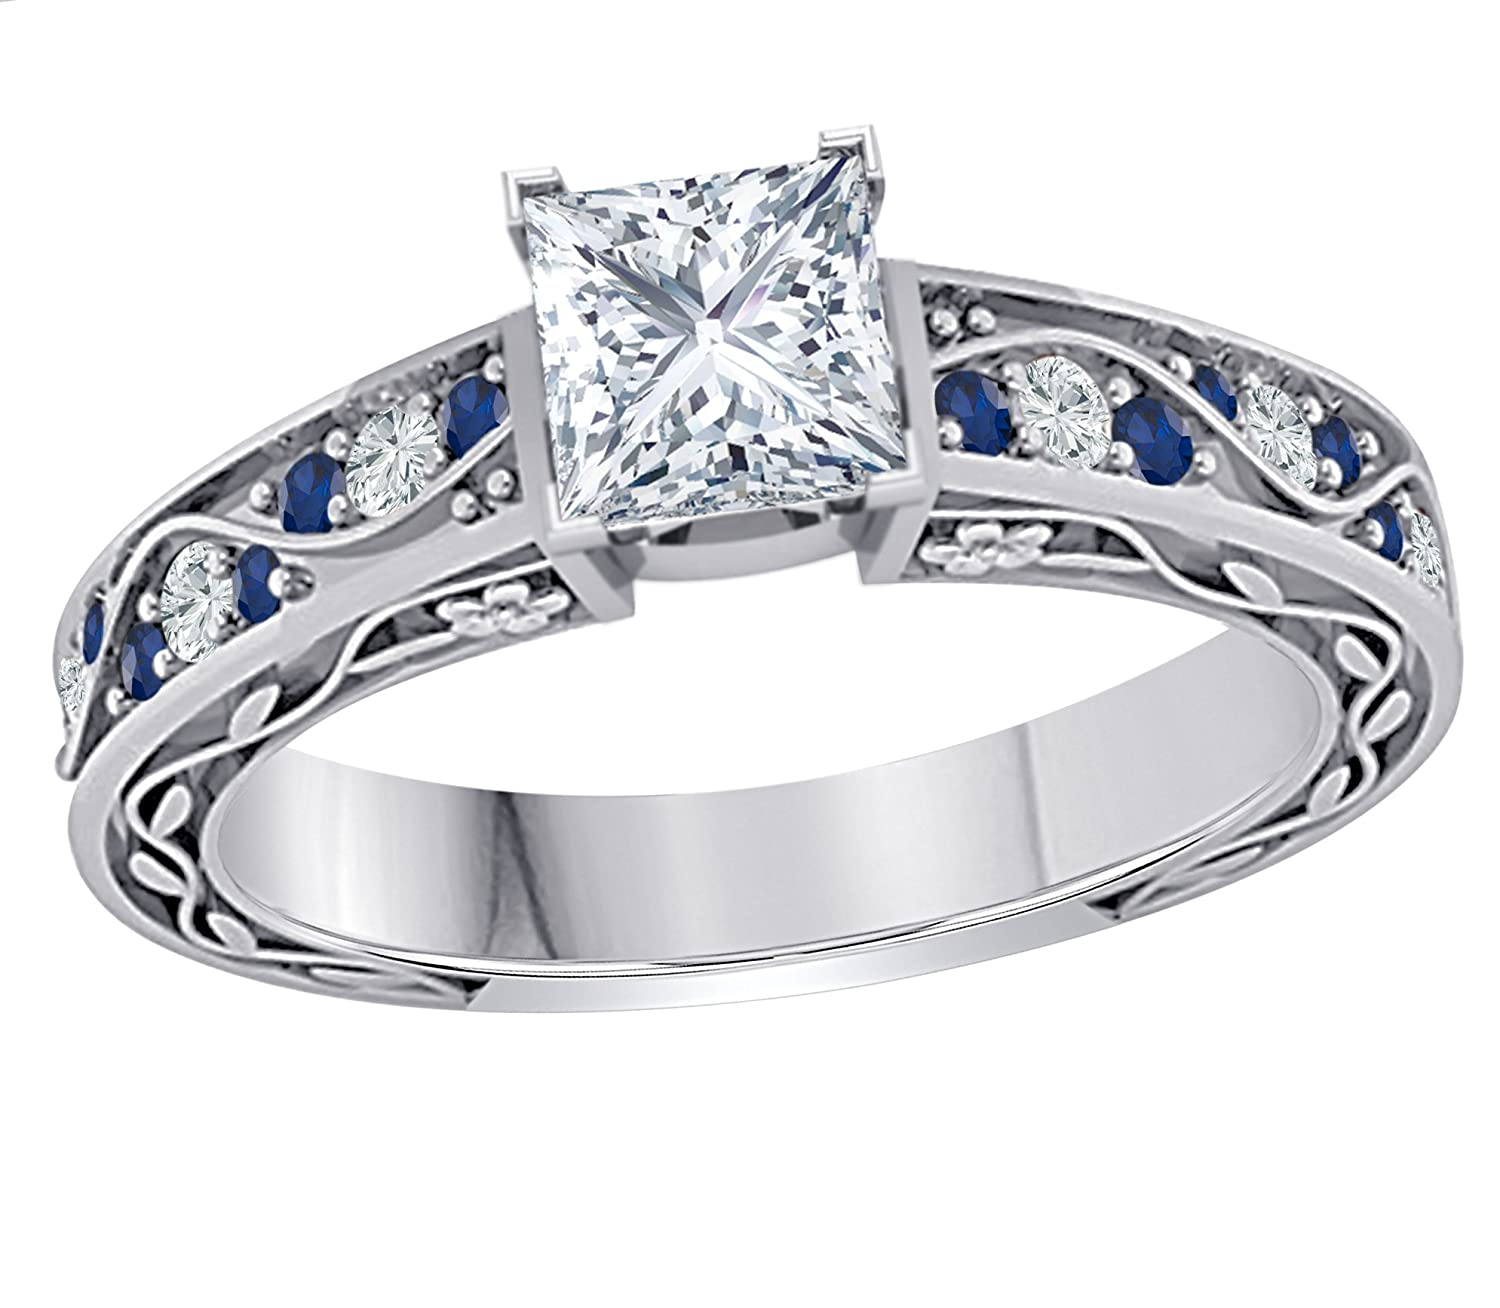 Stunning 1.00 CT Princess Cut Simulated CZ Diamond /& CZ Blue Sapphire .925 Sterling Silver Plated Flower Look Cute Engagement /& Wedding Ring Womens